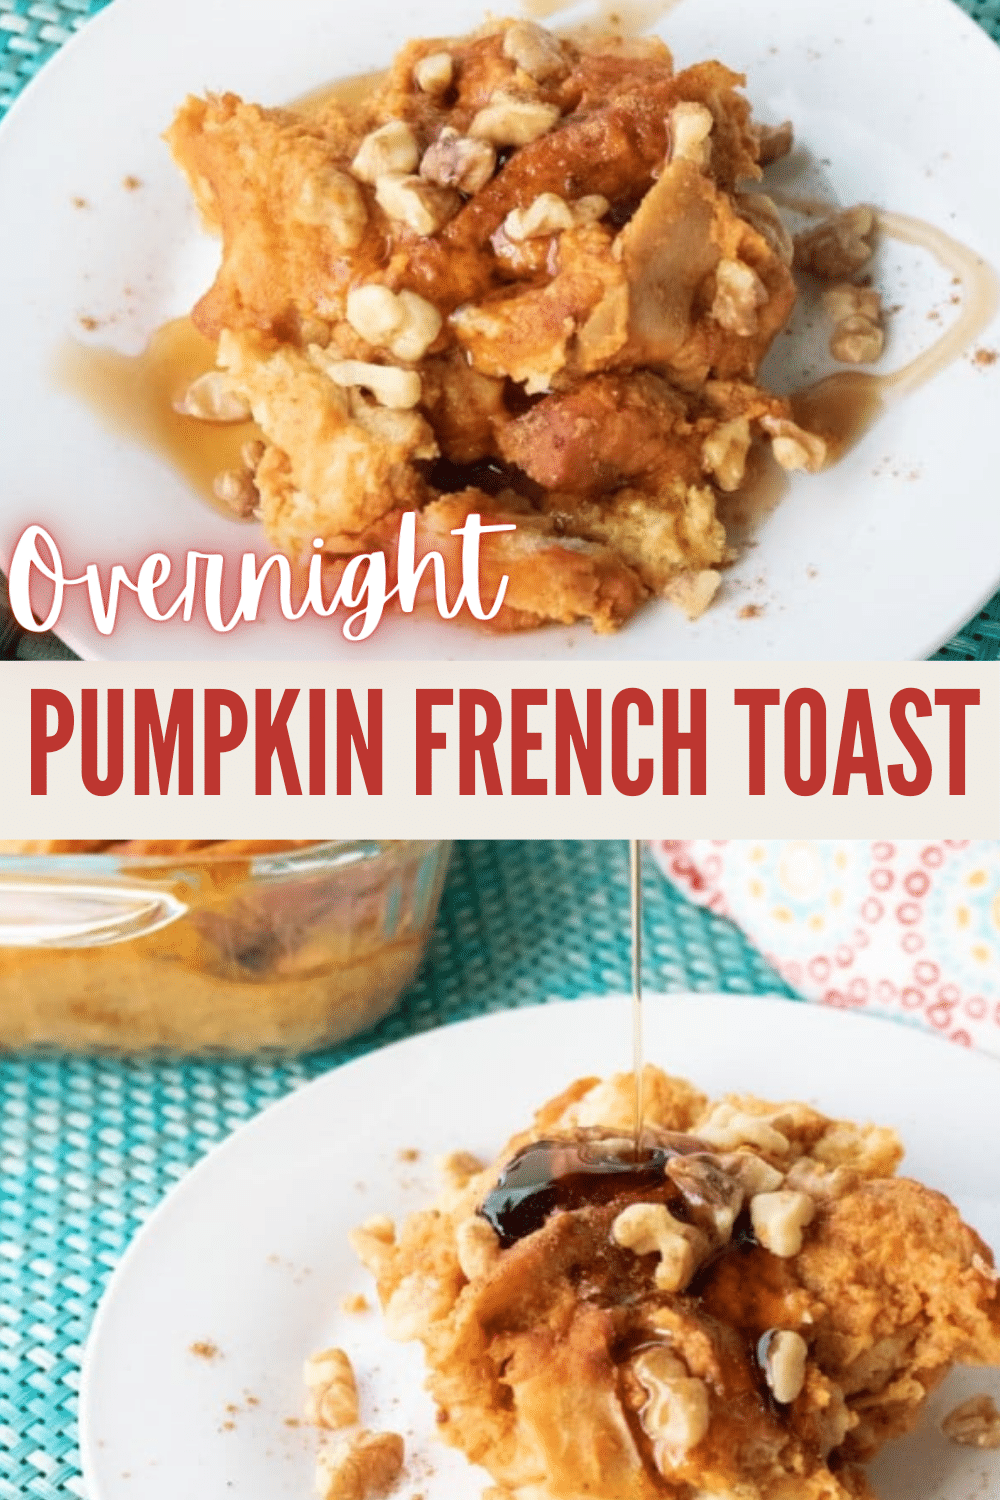 This Overnight Pumpkin French Toast is the perfect Fall breakfast when you're craving something flavorful and satisfying but want something easy. #makeahead #breakfast #pumpkin via @wondermomwannab